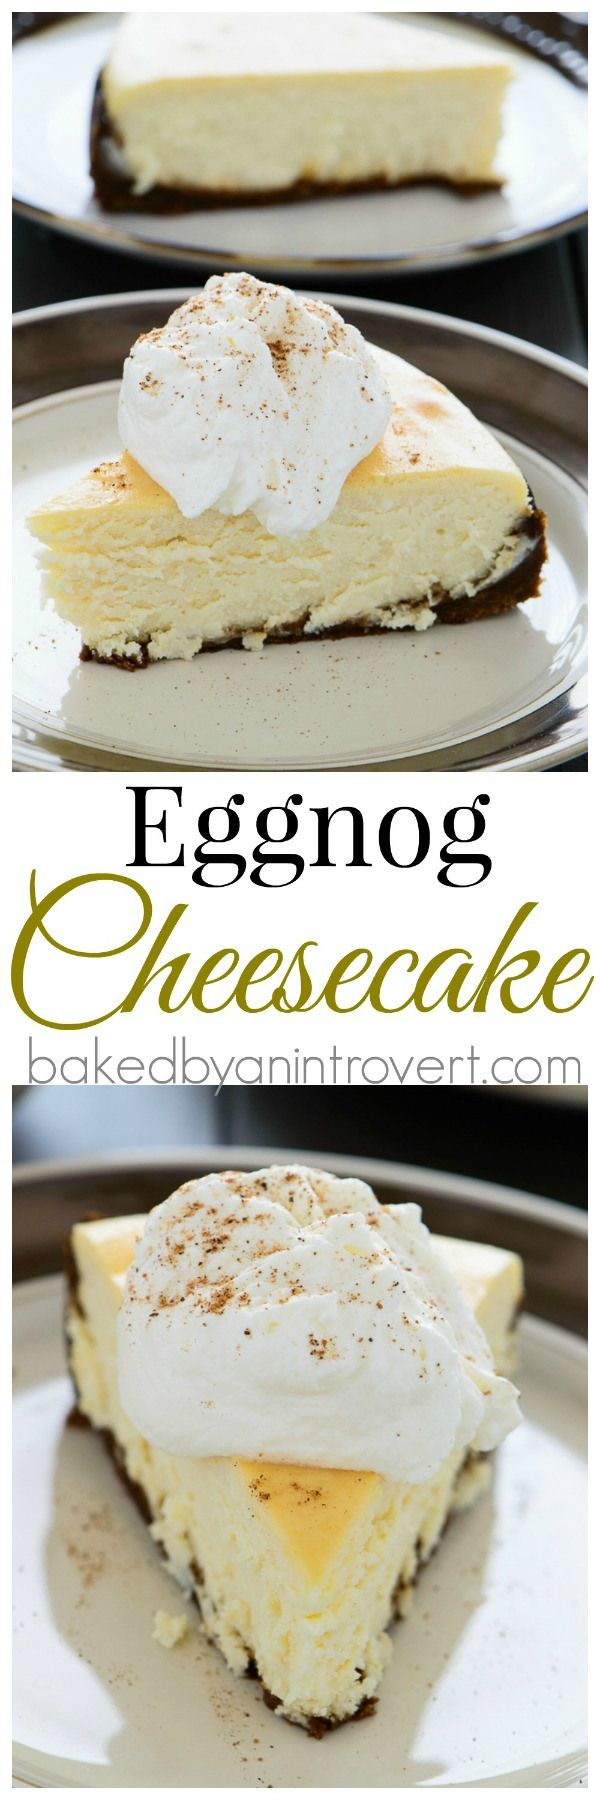 Divine eggnog cheesecake on top of a gingersnap crust, topped with eggnog whipped cream. This is something every eggnog lover must try!